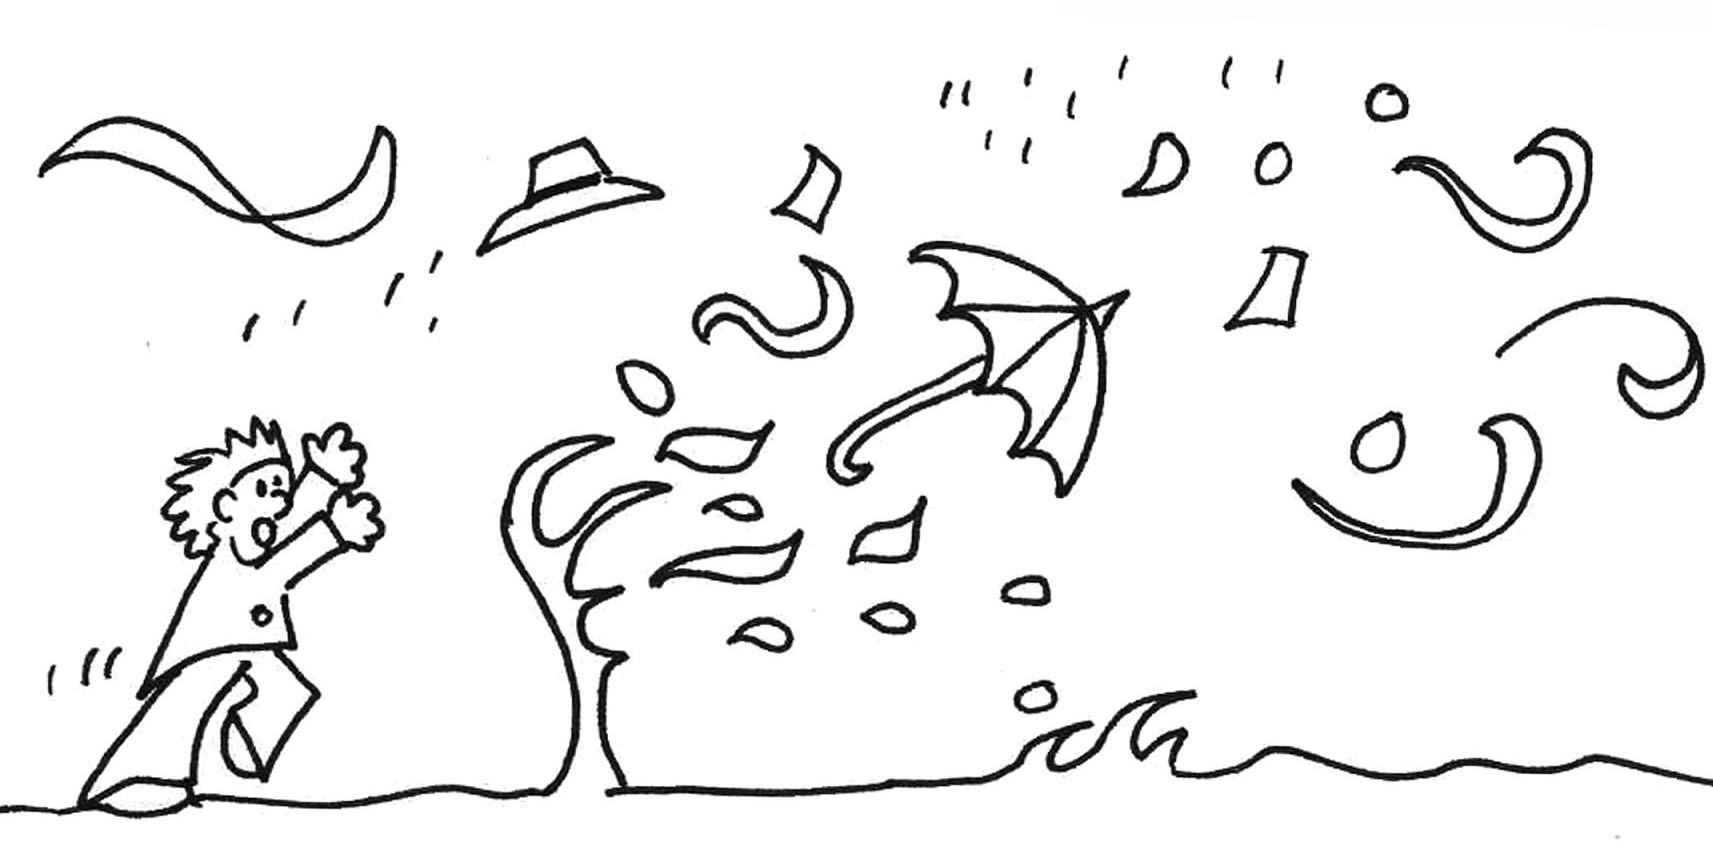 Blowing wind drawing at. Windy clipart sketch